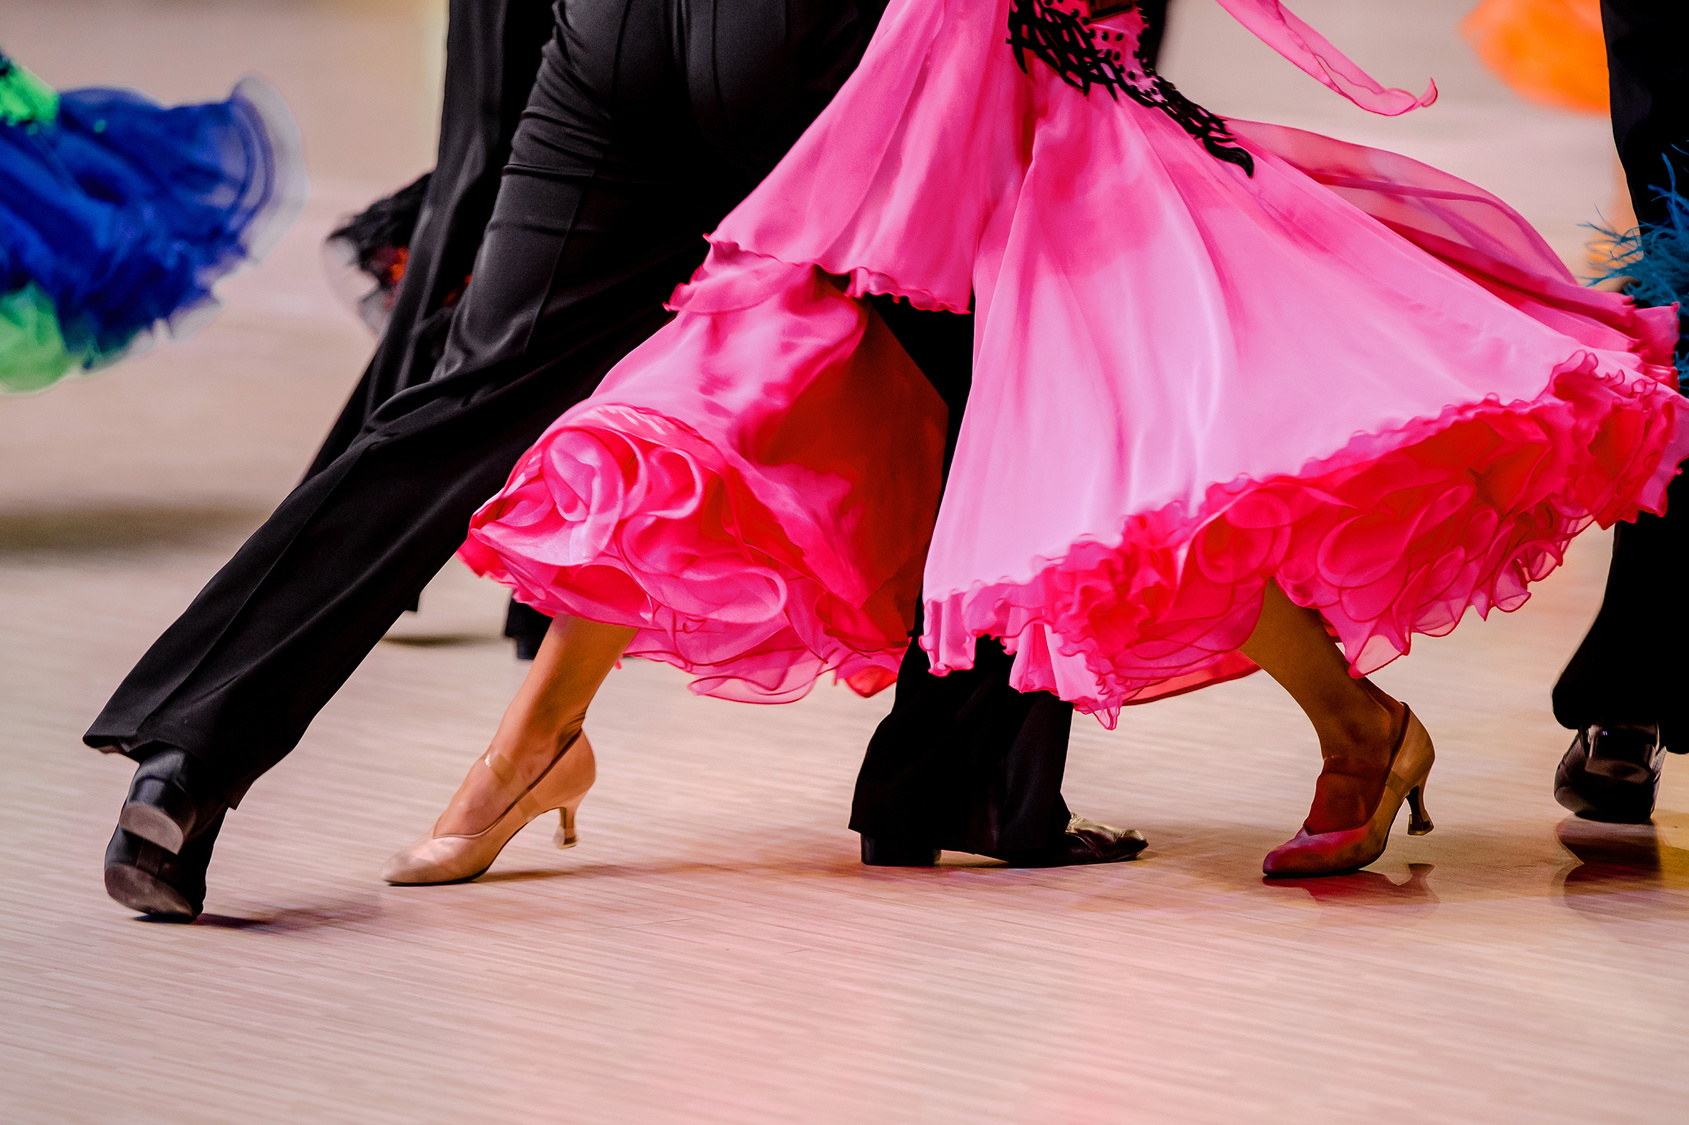 Dance Programs. Competitions in ballroom dancing